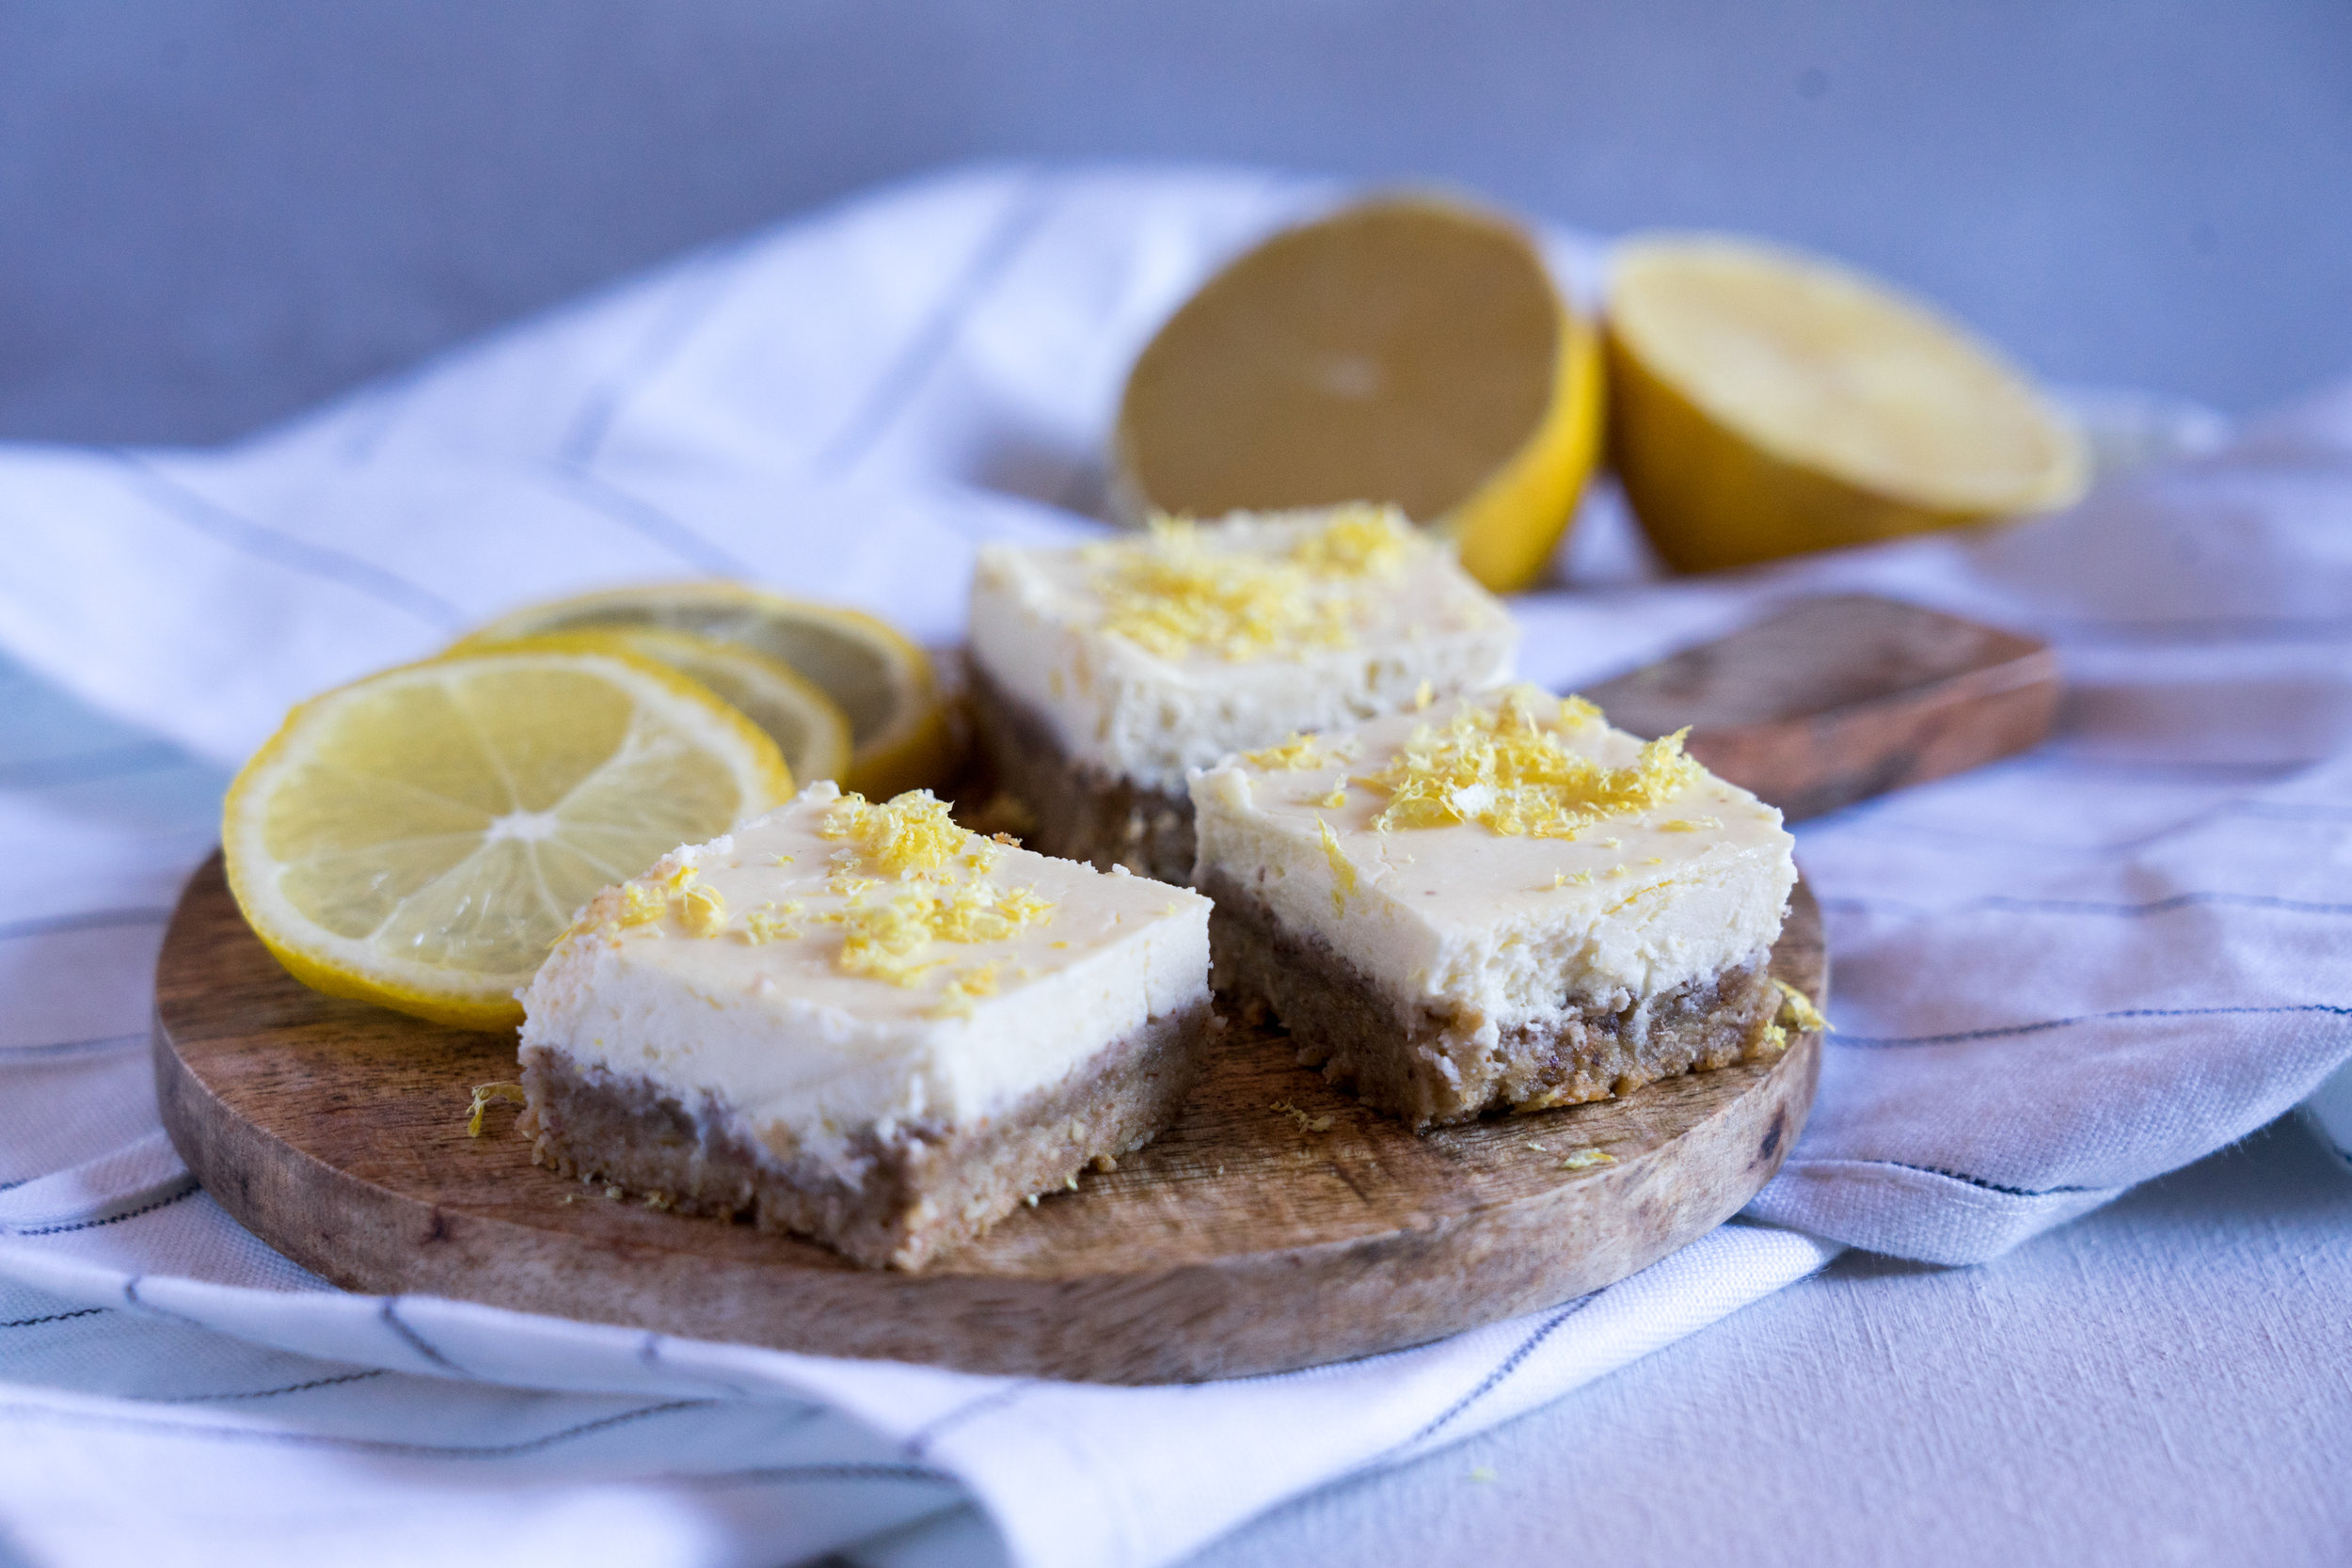 Gluten-free Lemon Bars